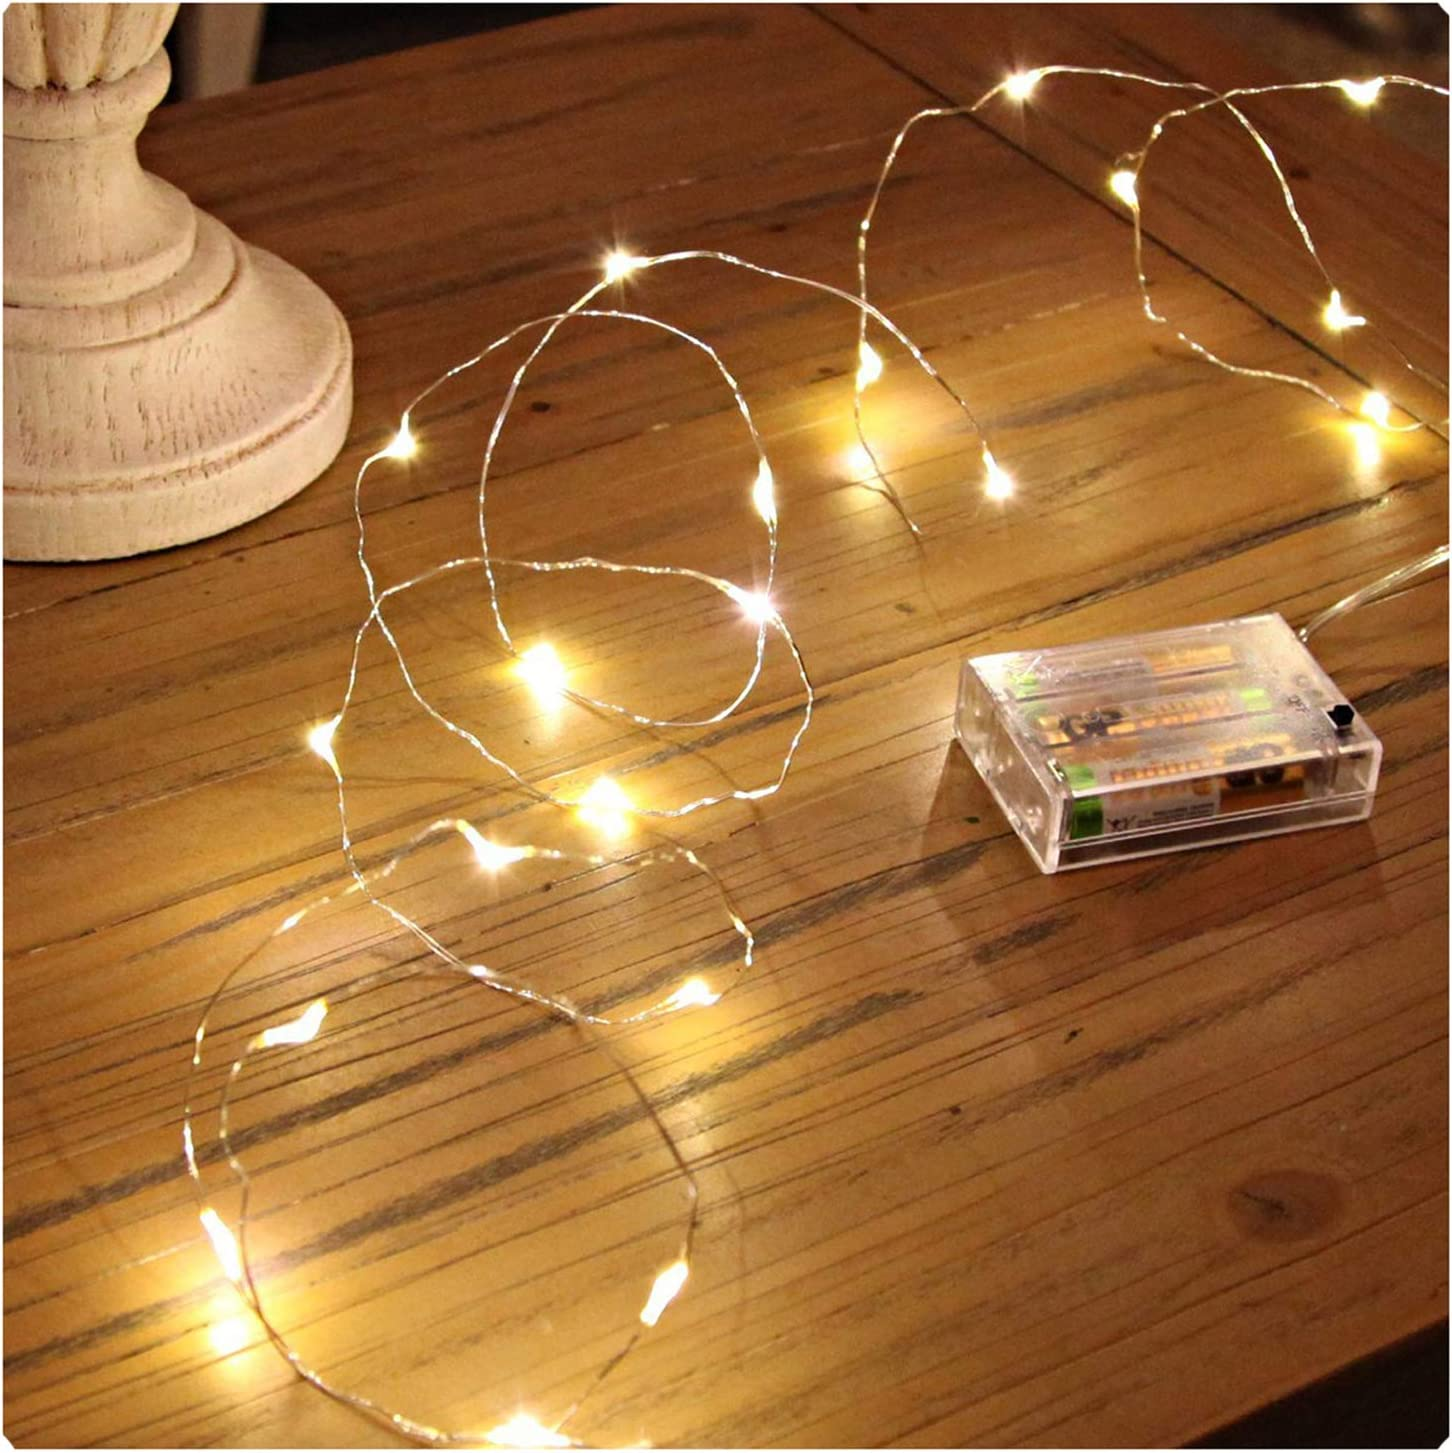 Sanniu Led String Lights, Mini Battery Powered Copper Wire Starry Fairy Lights, Battery Operated Lights for Bedroom, Christmas, Parties, Wedding, Centerpiece, Decoration (5m/16ft Warm White) : Garden & Outdoor